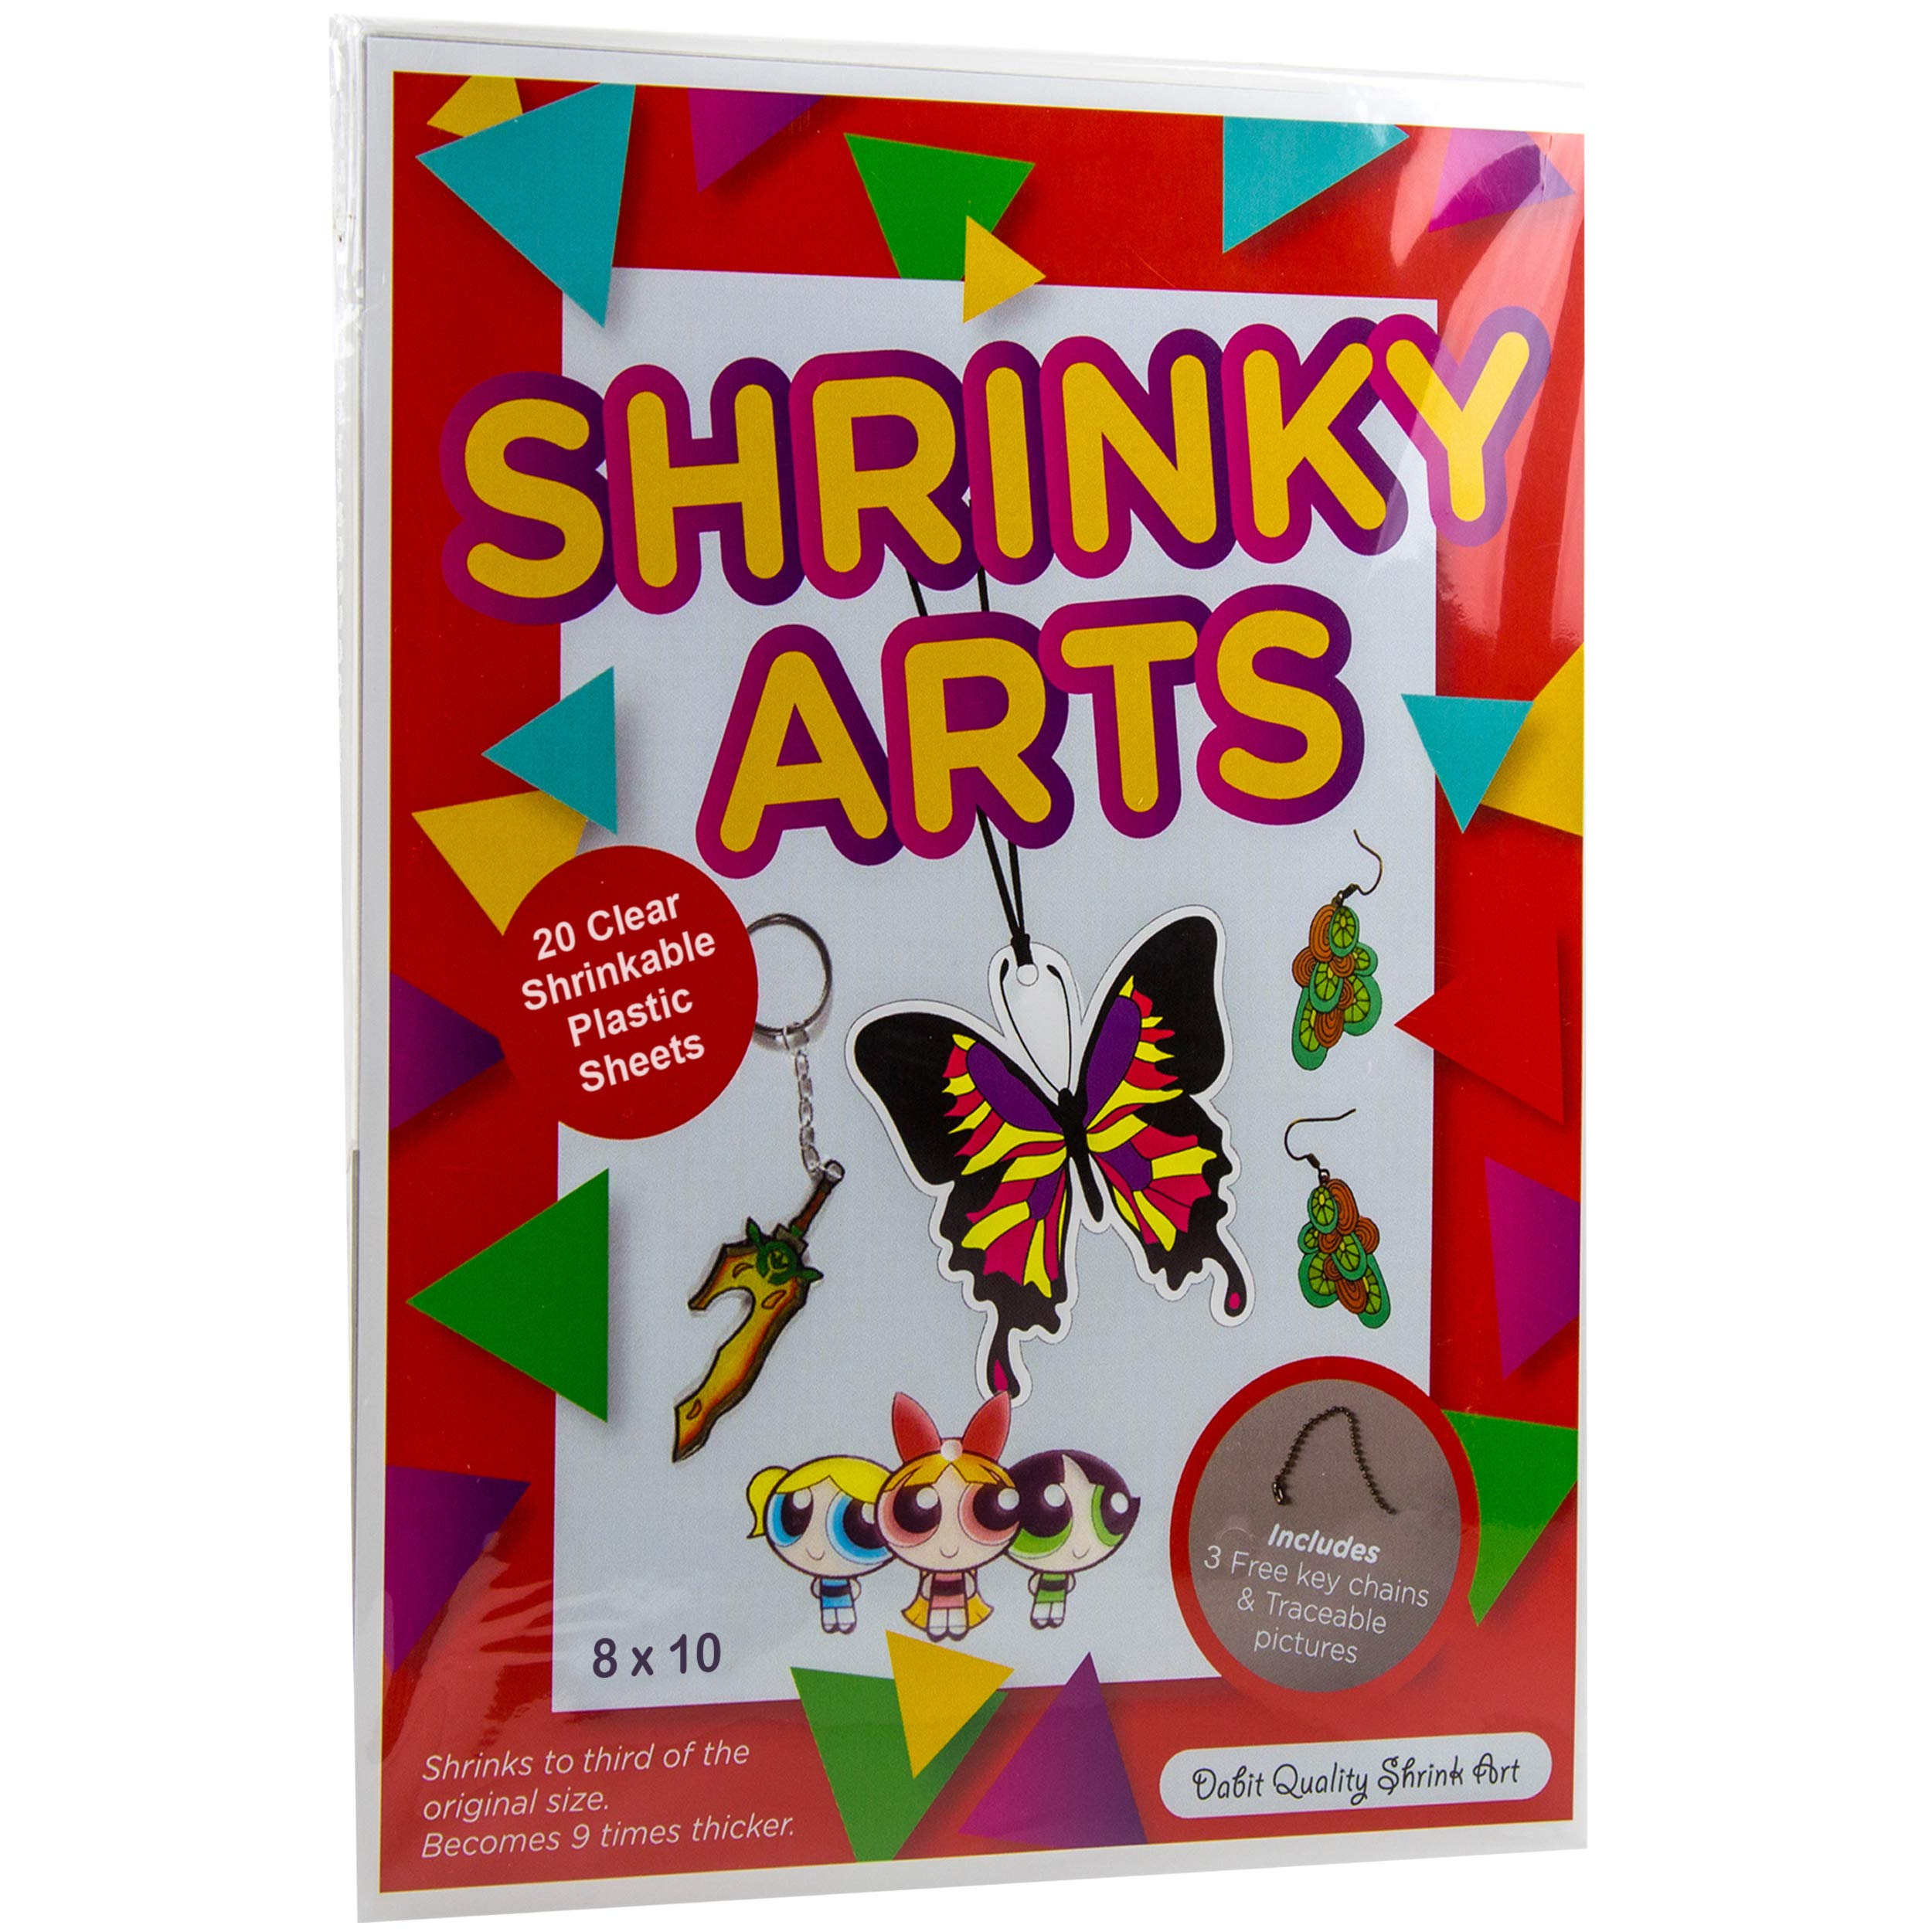 Dabit Shrink Arts And Crafts For Kids 20-Pack, Shrinky A Dinks Paper For Boys And Girls, Clear Shrink Plastic Shrink Film Sheets, Kids Activities For All Ages, Bonus Traceable Pictures And Keychains by Dabit